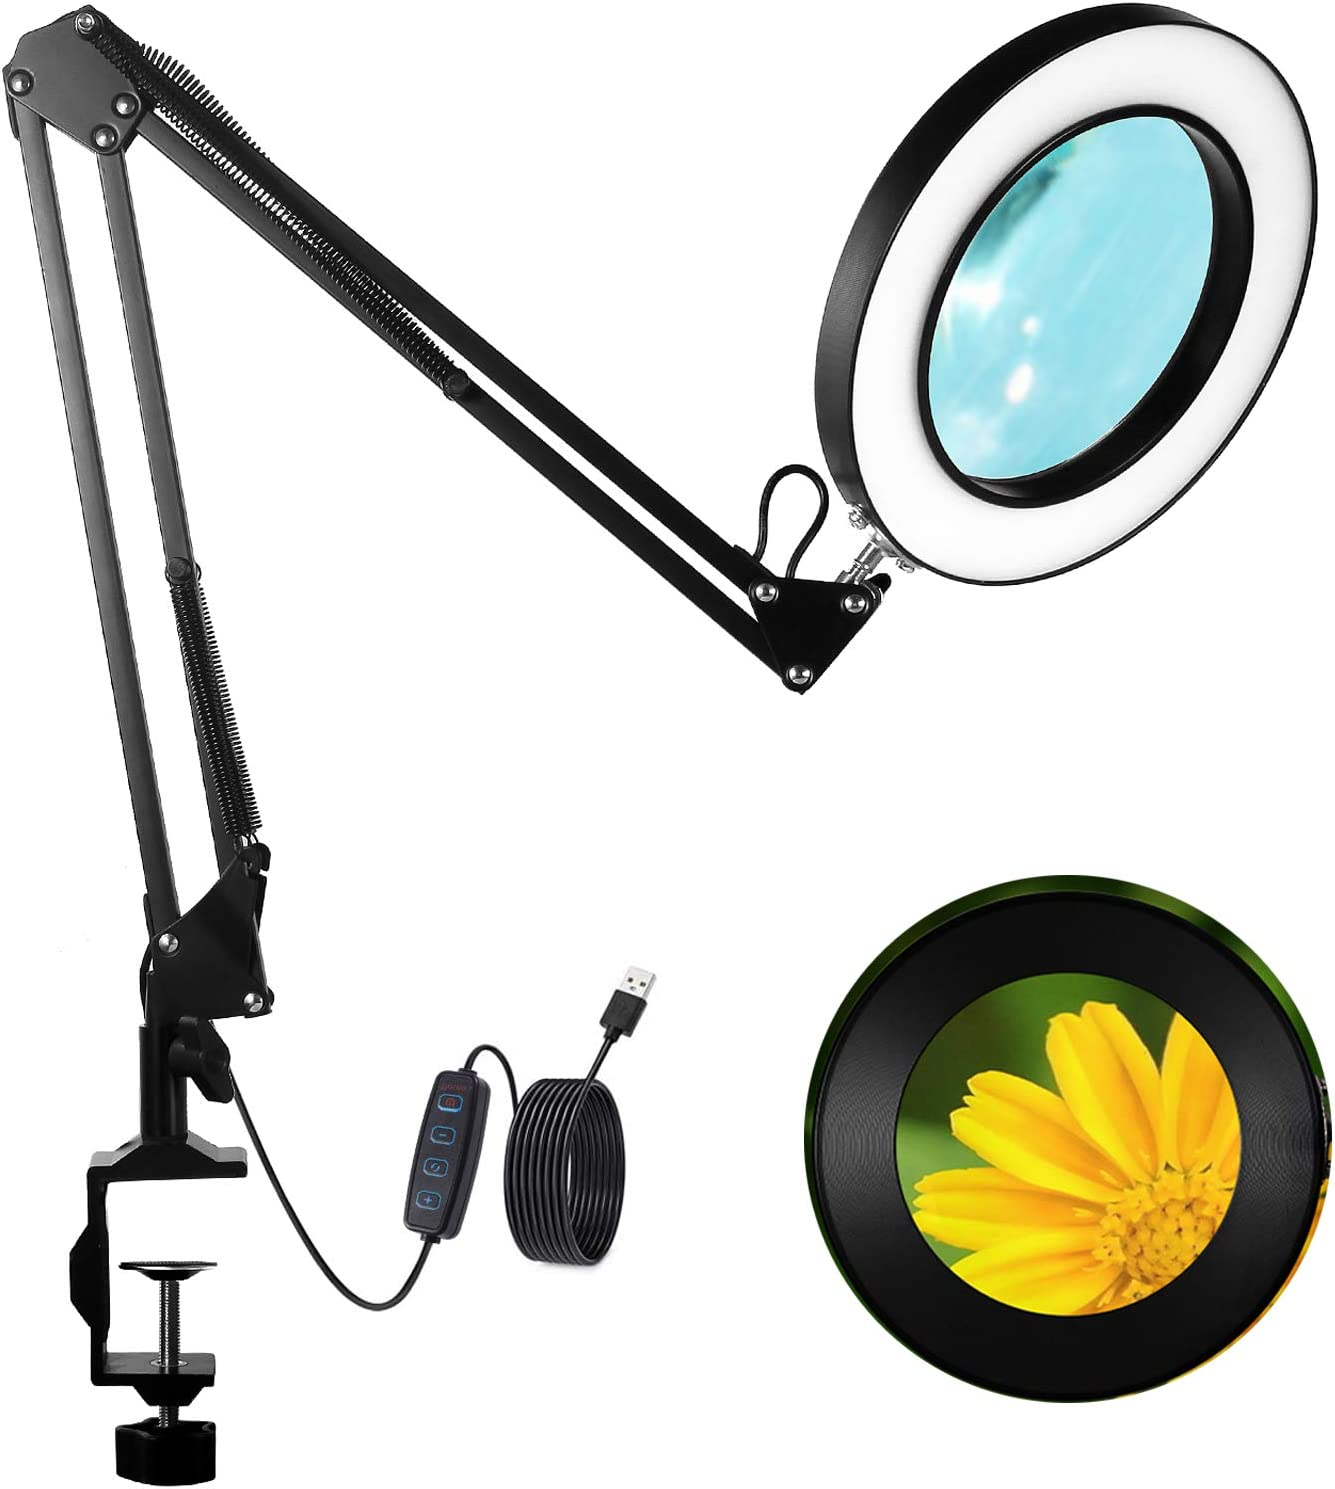 "GEYOTAR LED Magnifying Lamp Light with Clamp,Magnifier Desk Lamp,3 Colors Modes 10 Brightness Stepless Dimming,4.1"" 3X Magnifying Glass and Adjustable Swing Arms for Reading Hobby,Close Work Craft"